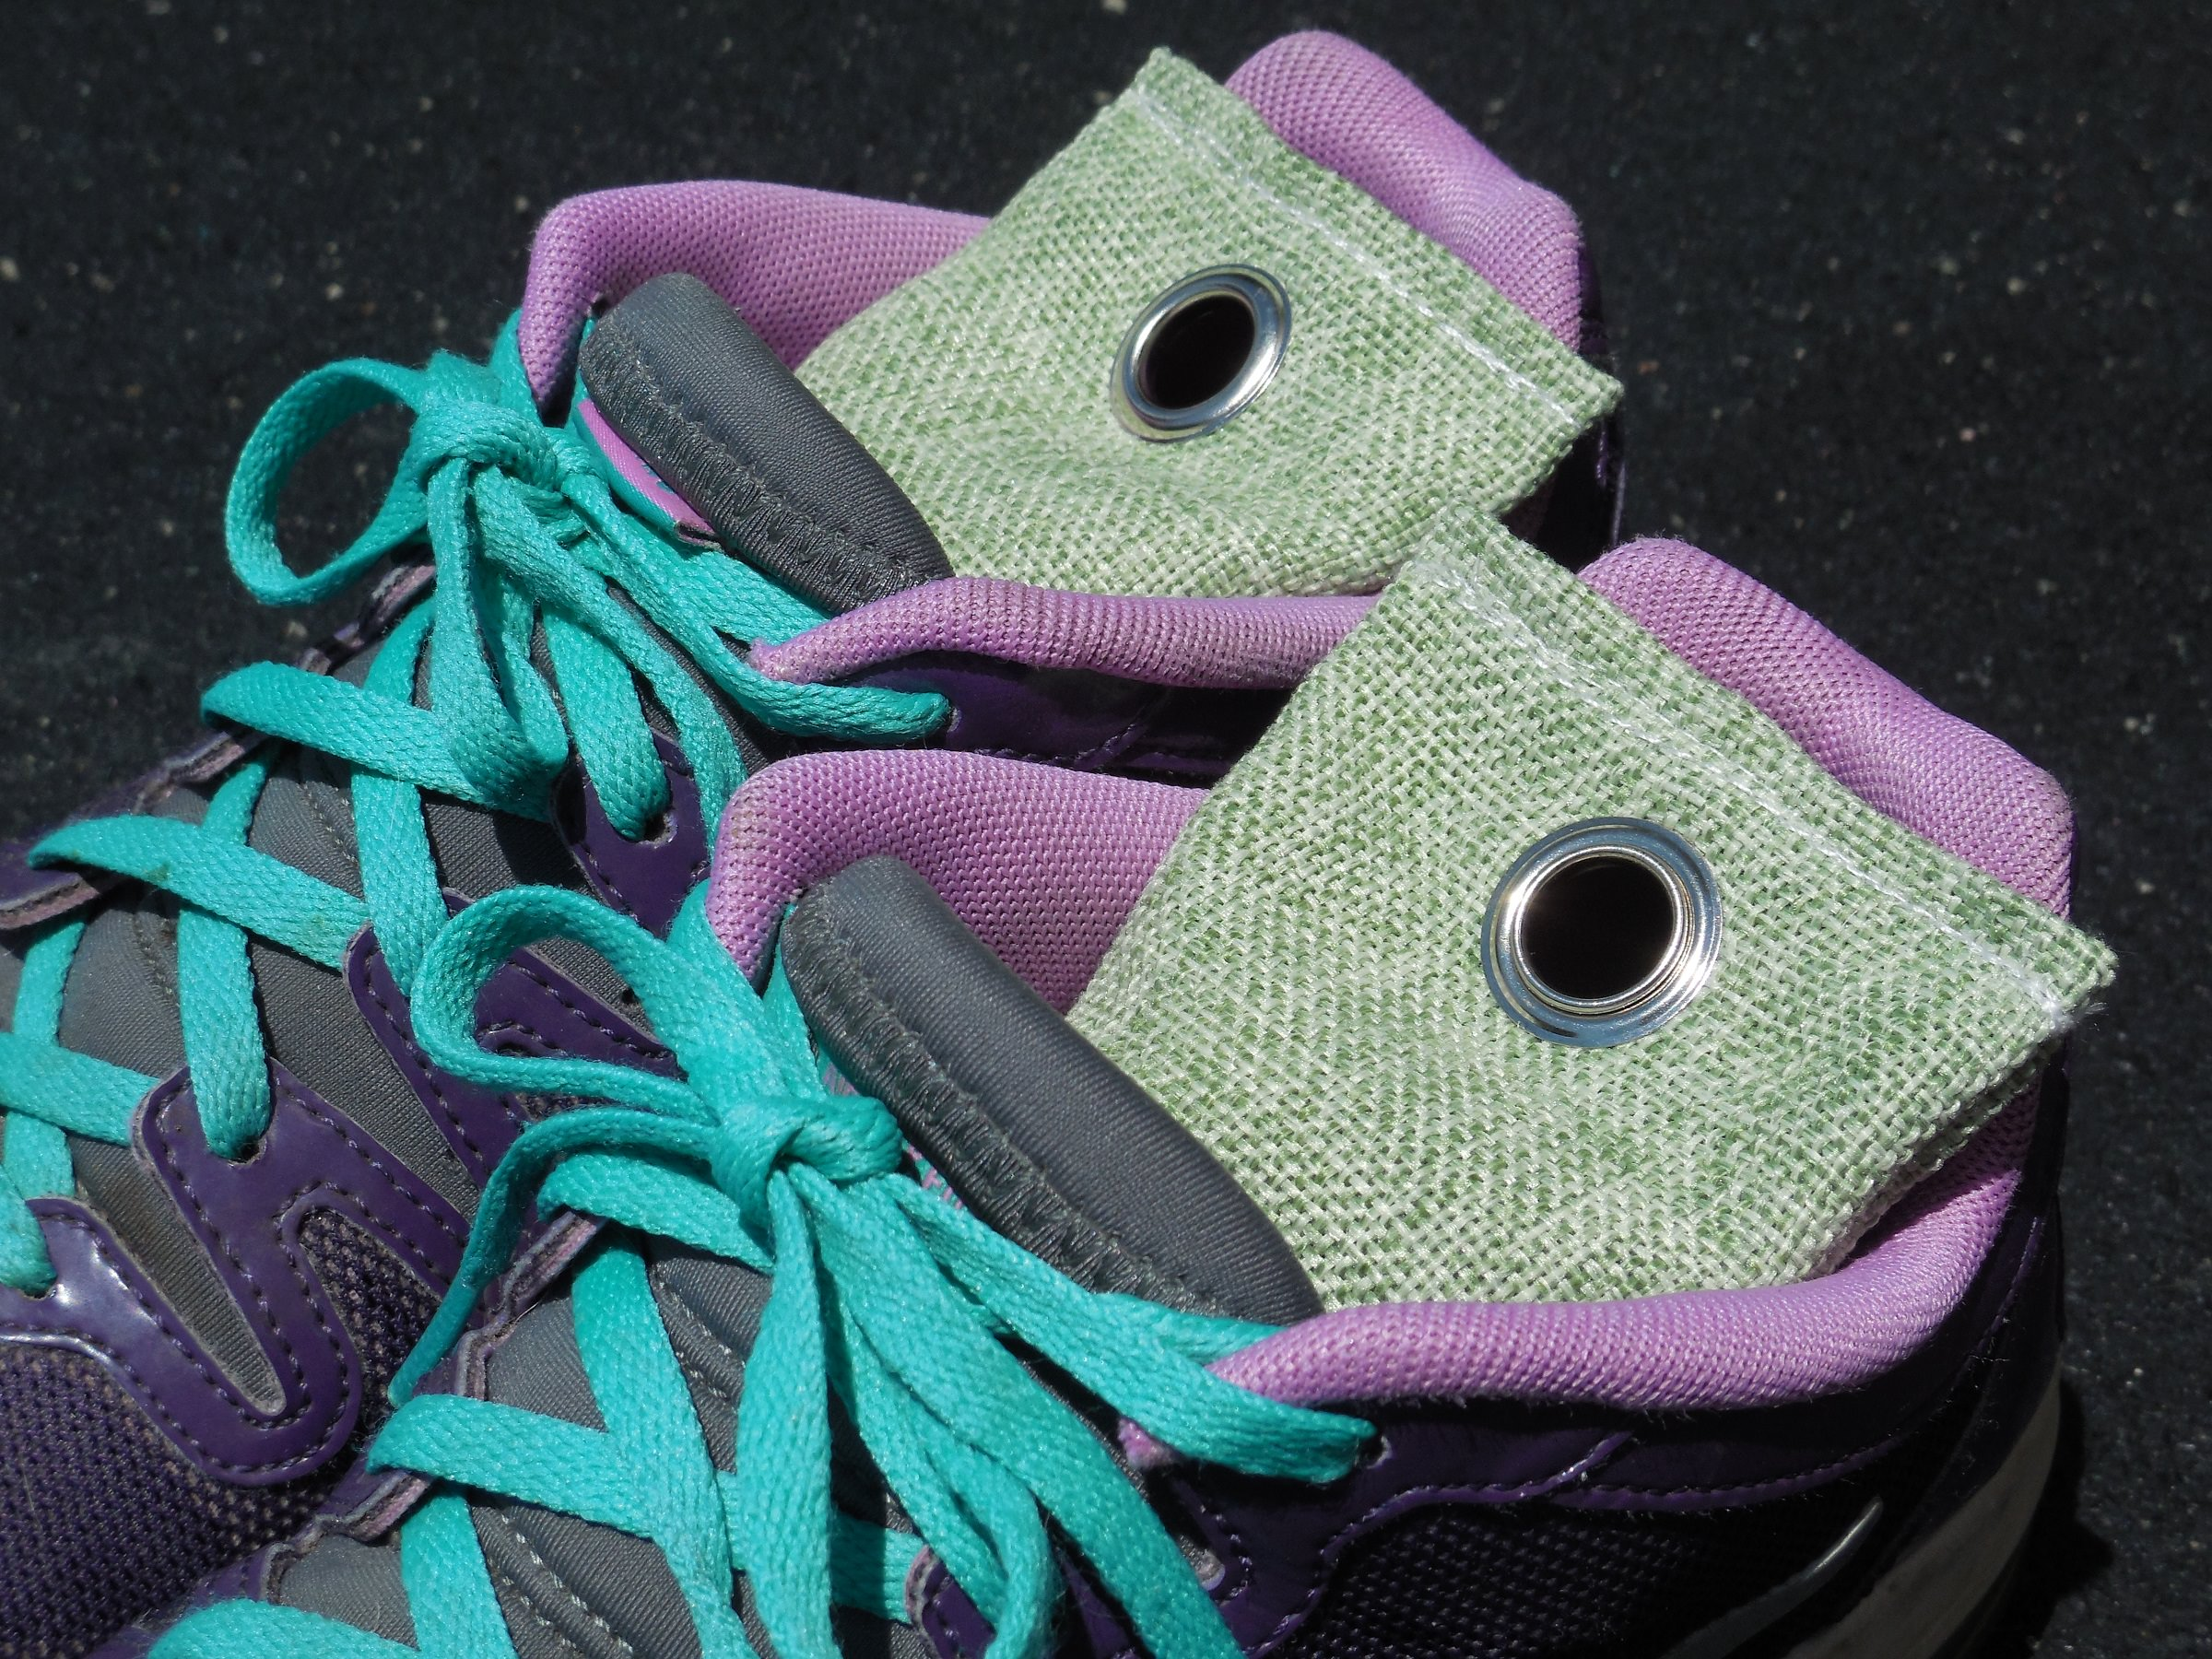 green fabric charchoal deodorizers in a pair of purple sneakers